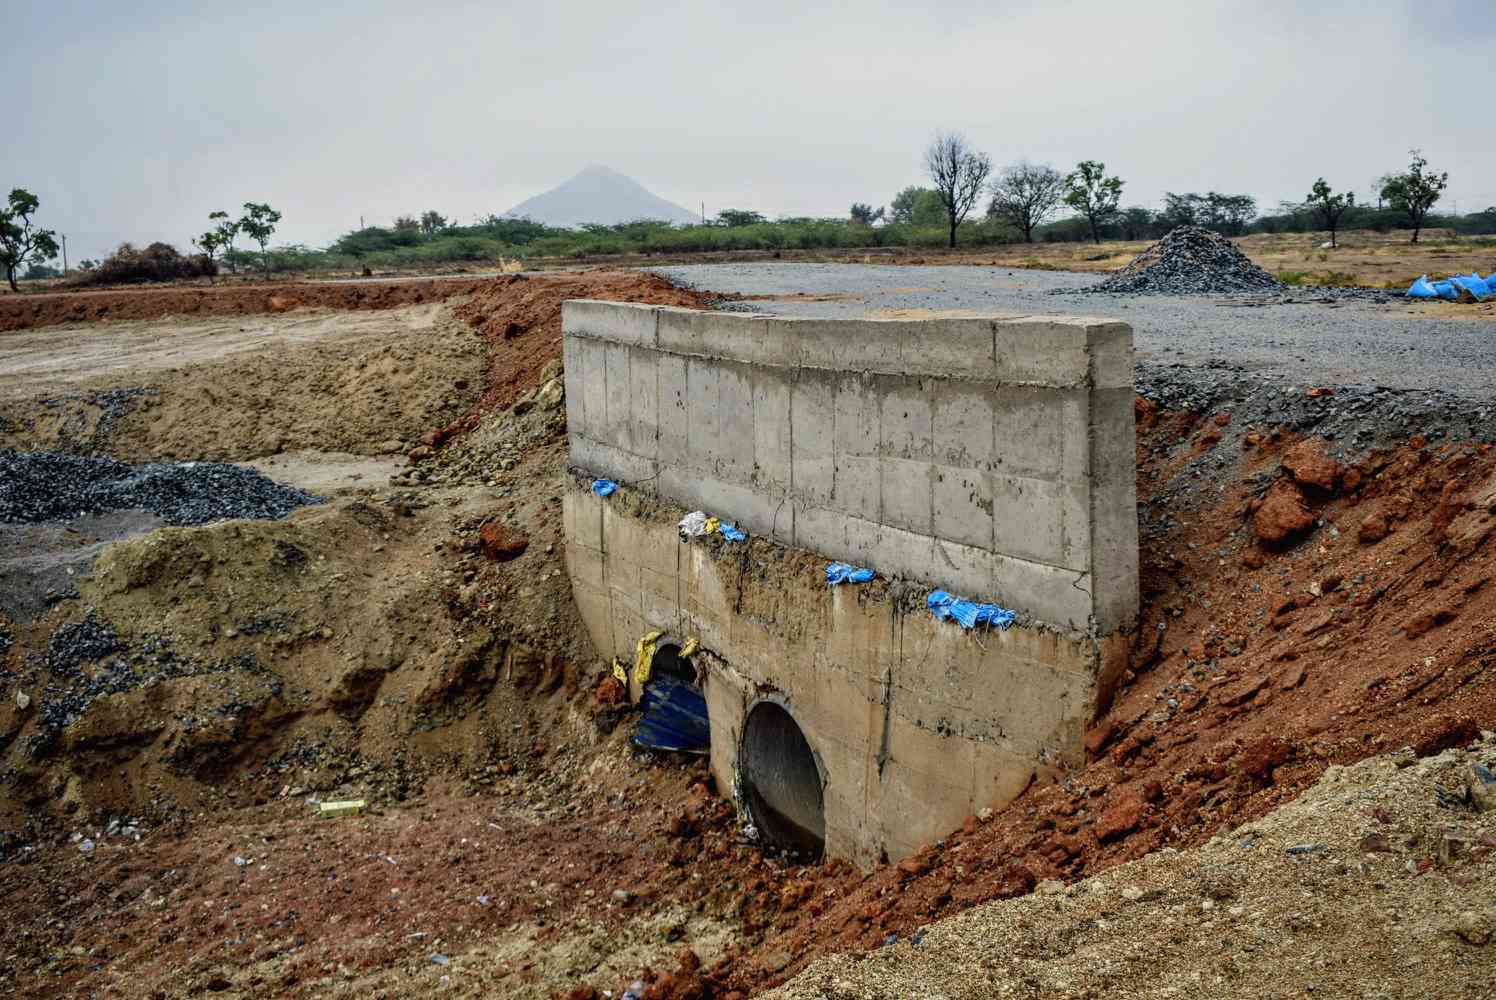 A check dam built with NREGA funds in Anantapur district. Photo: Aruna Chandrasekhar